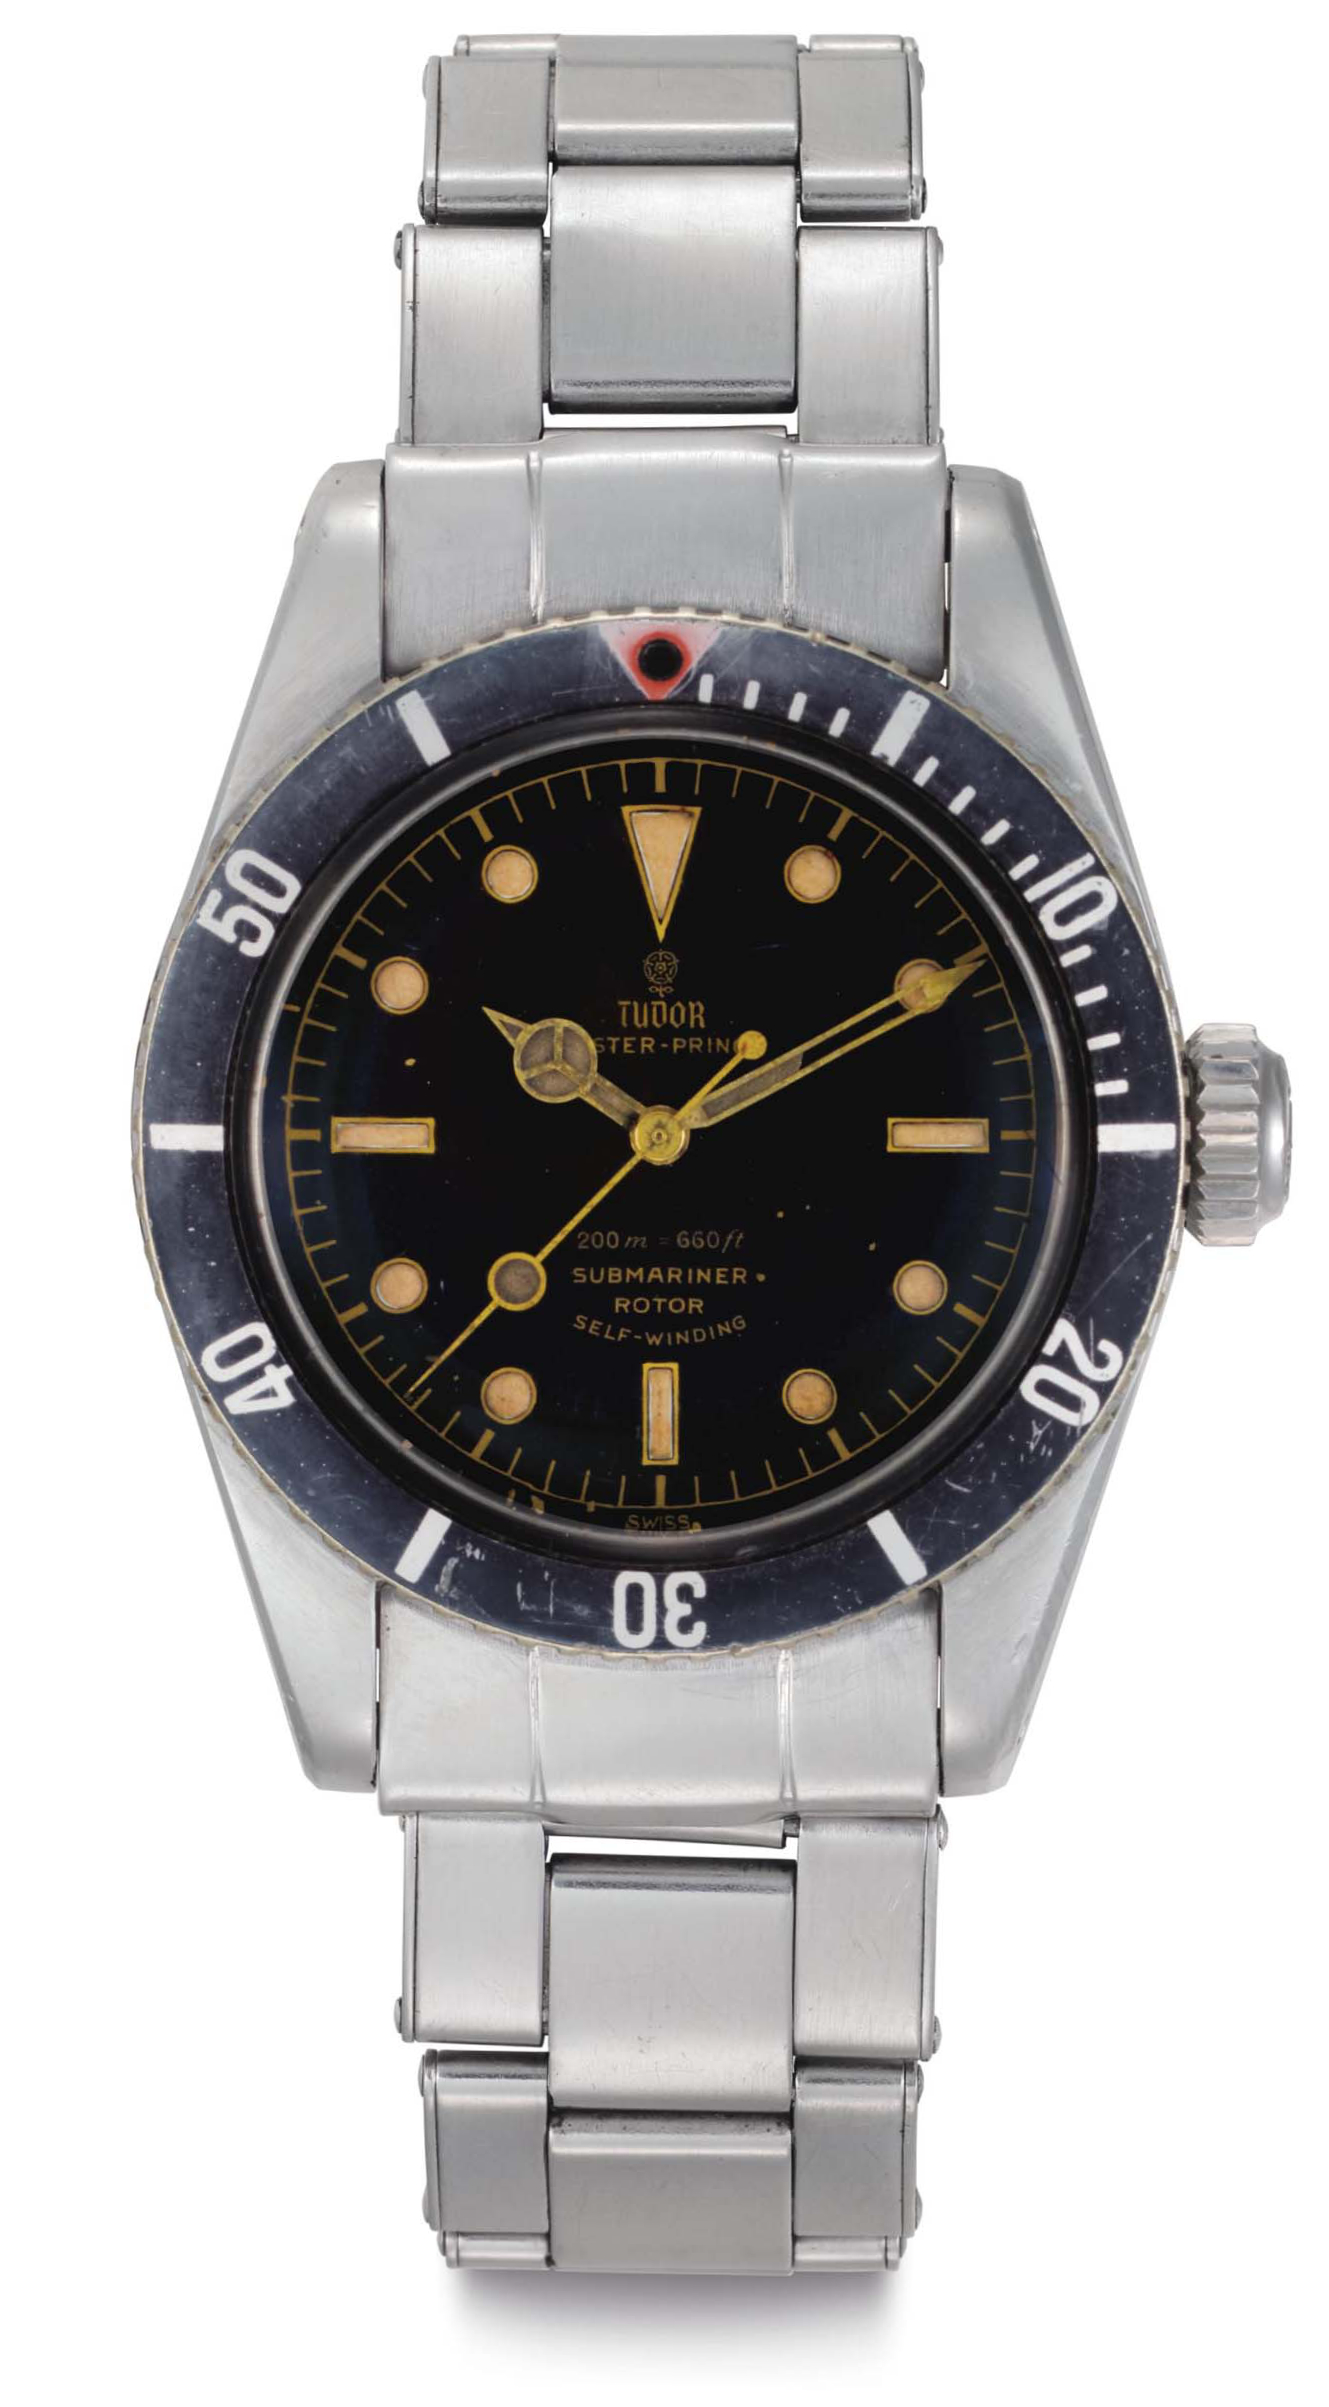 Tudor, Oyster-Prince Submariner, Ref. 7924. Circa 1959. (Credit: Christie's)